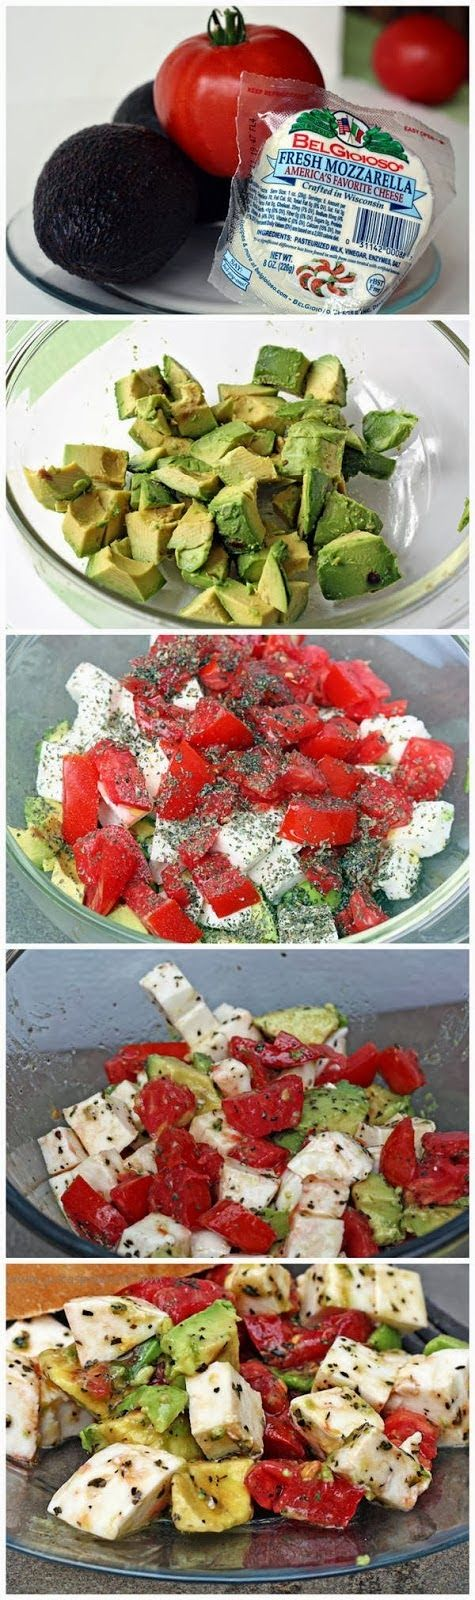 Mozzarella Salad Avocado / Tomato/